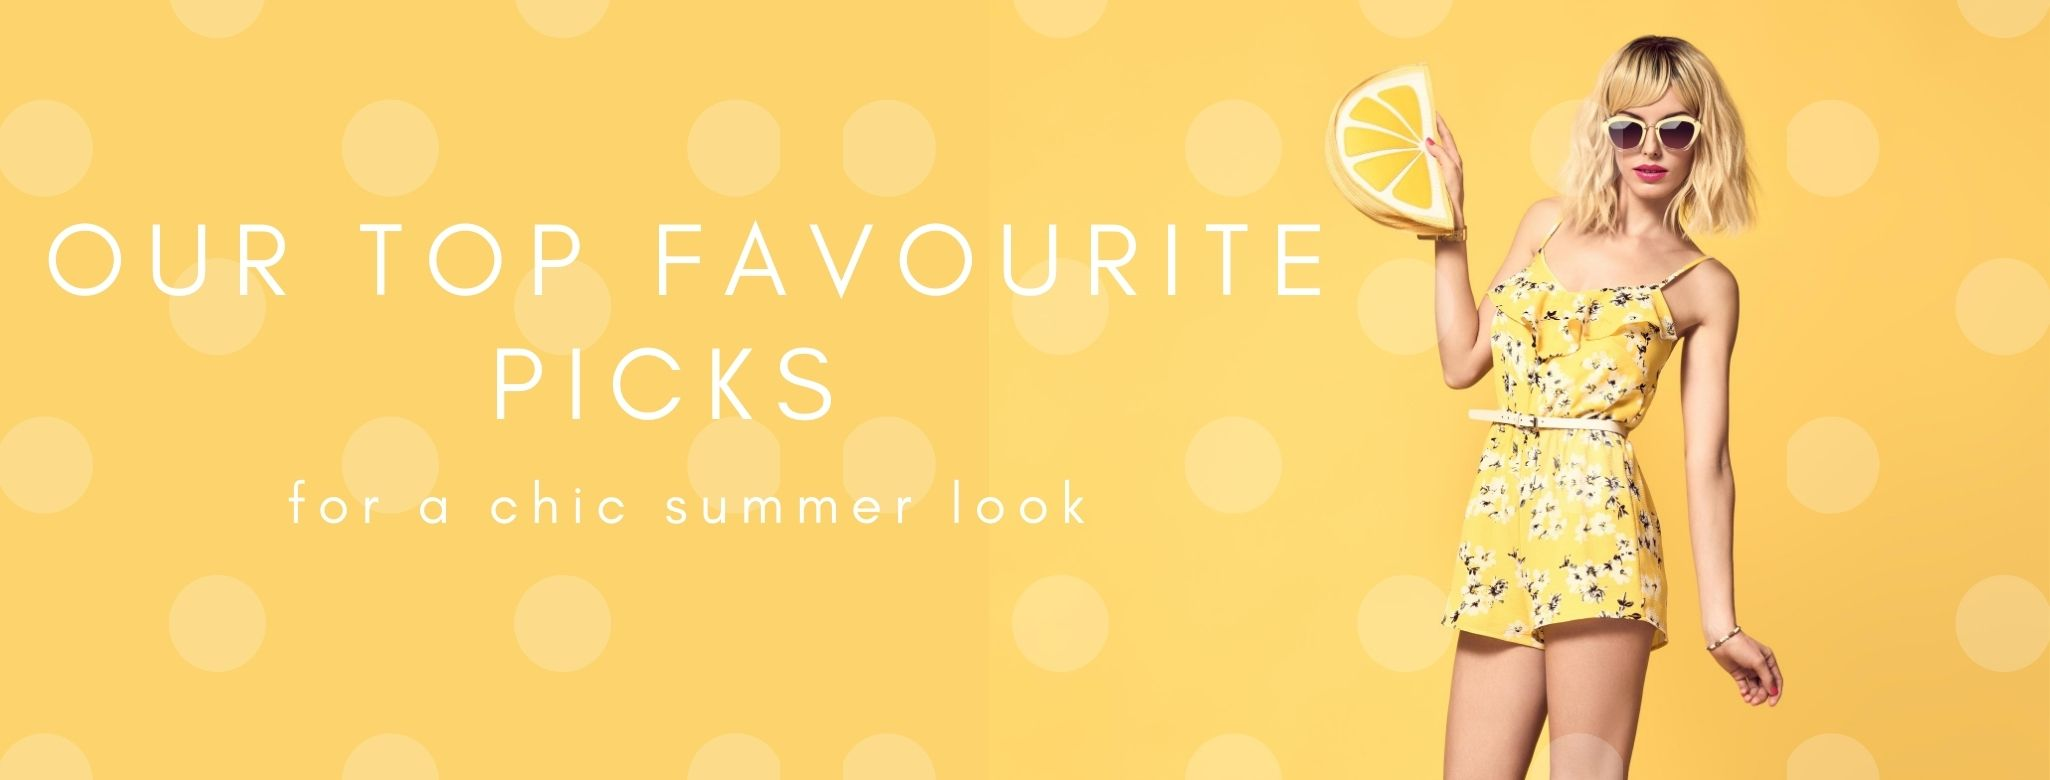 Top picks for chic summer look